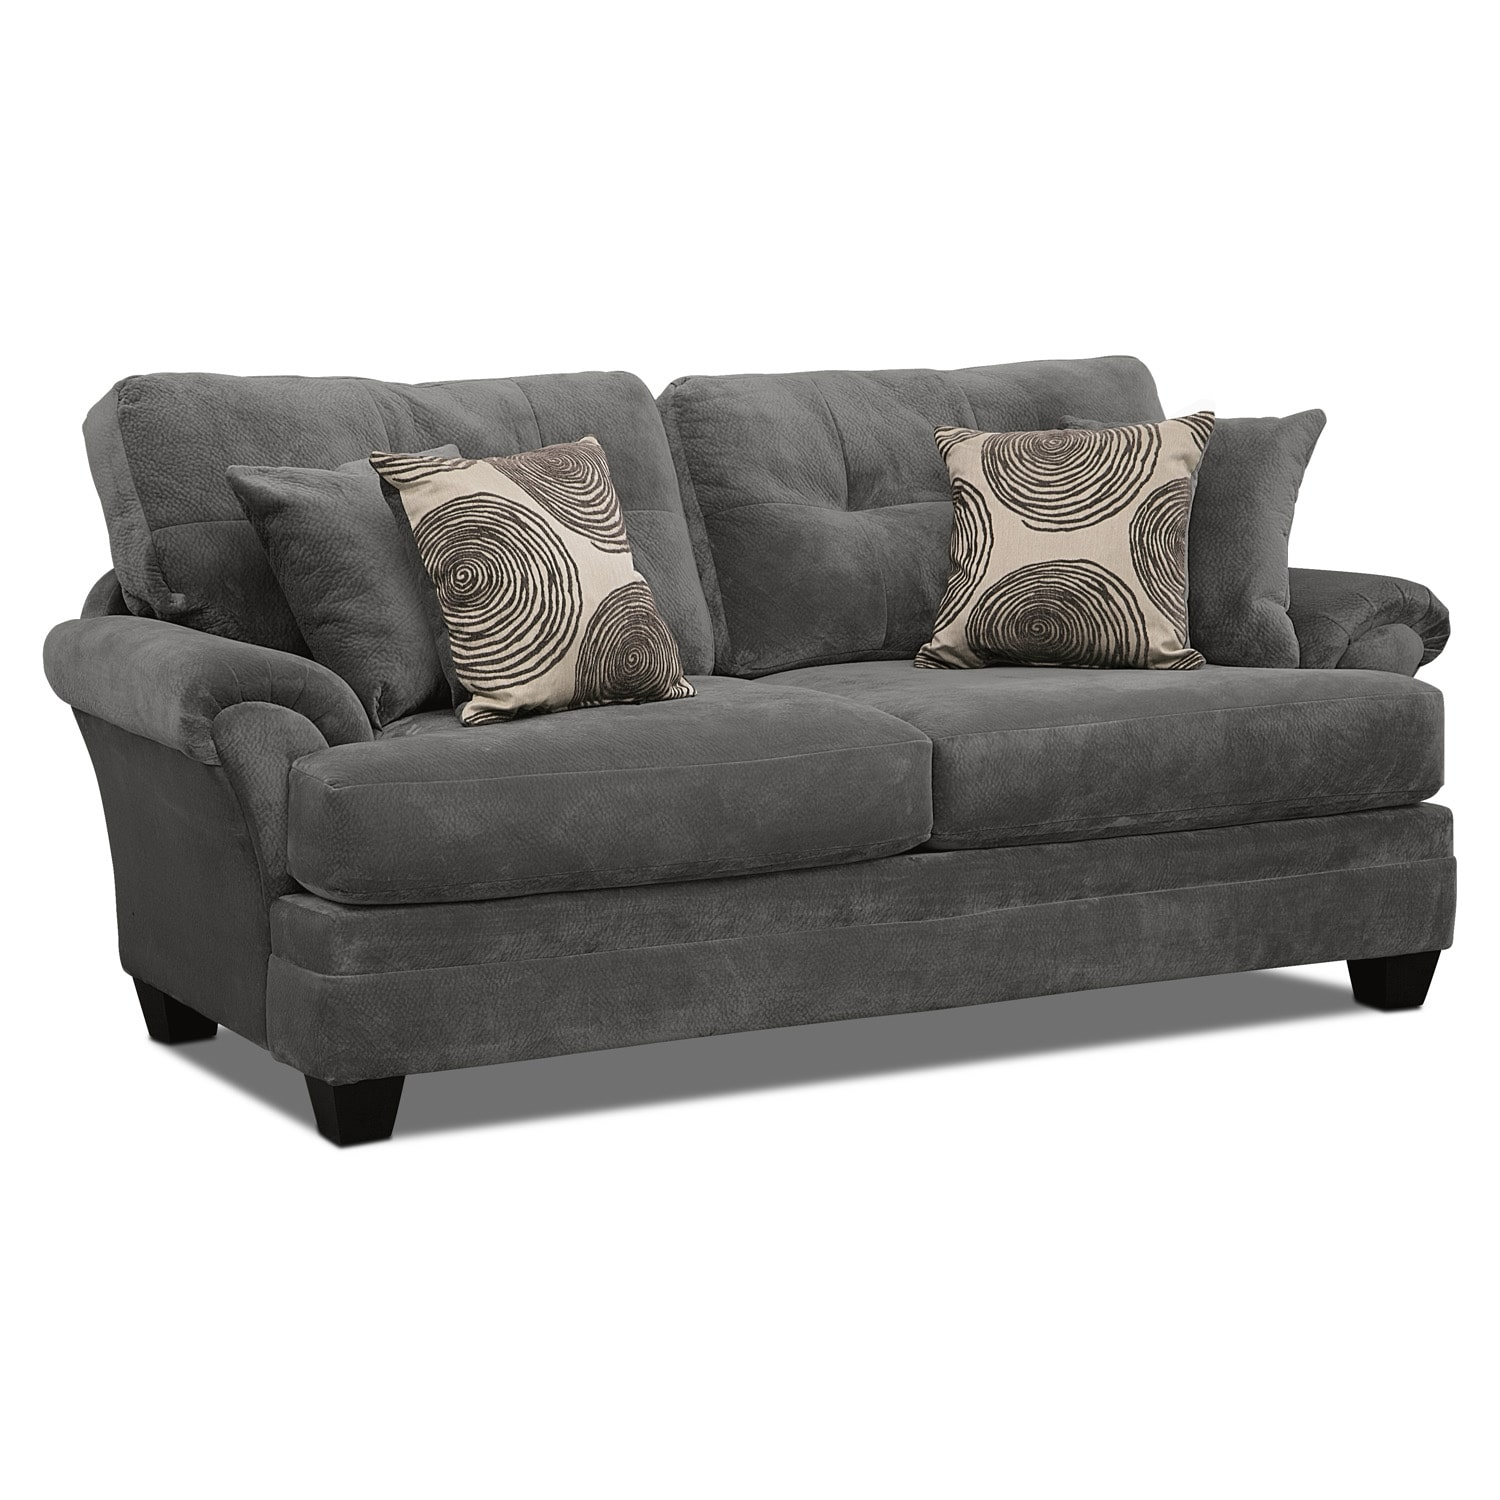 Cordoba Gray Sofa by Factory Outlet